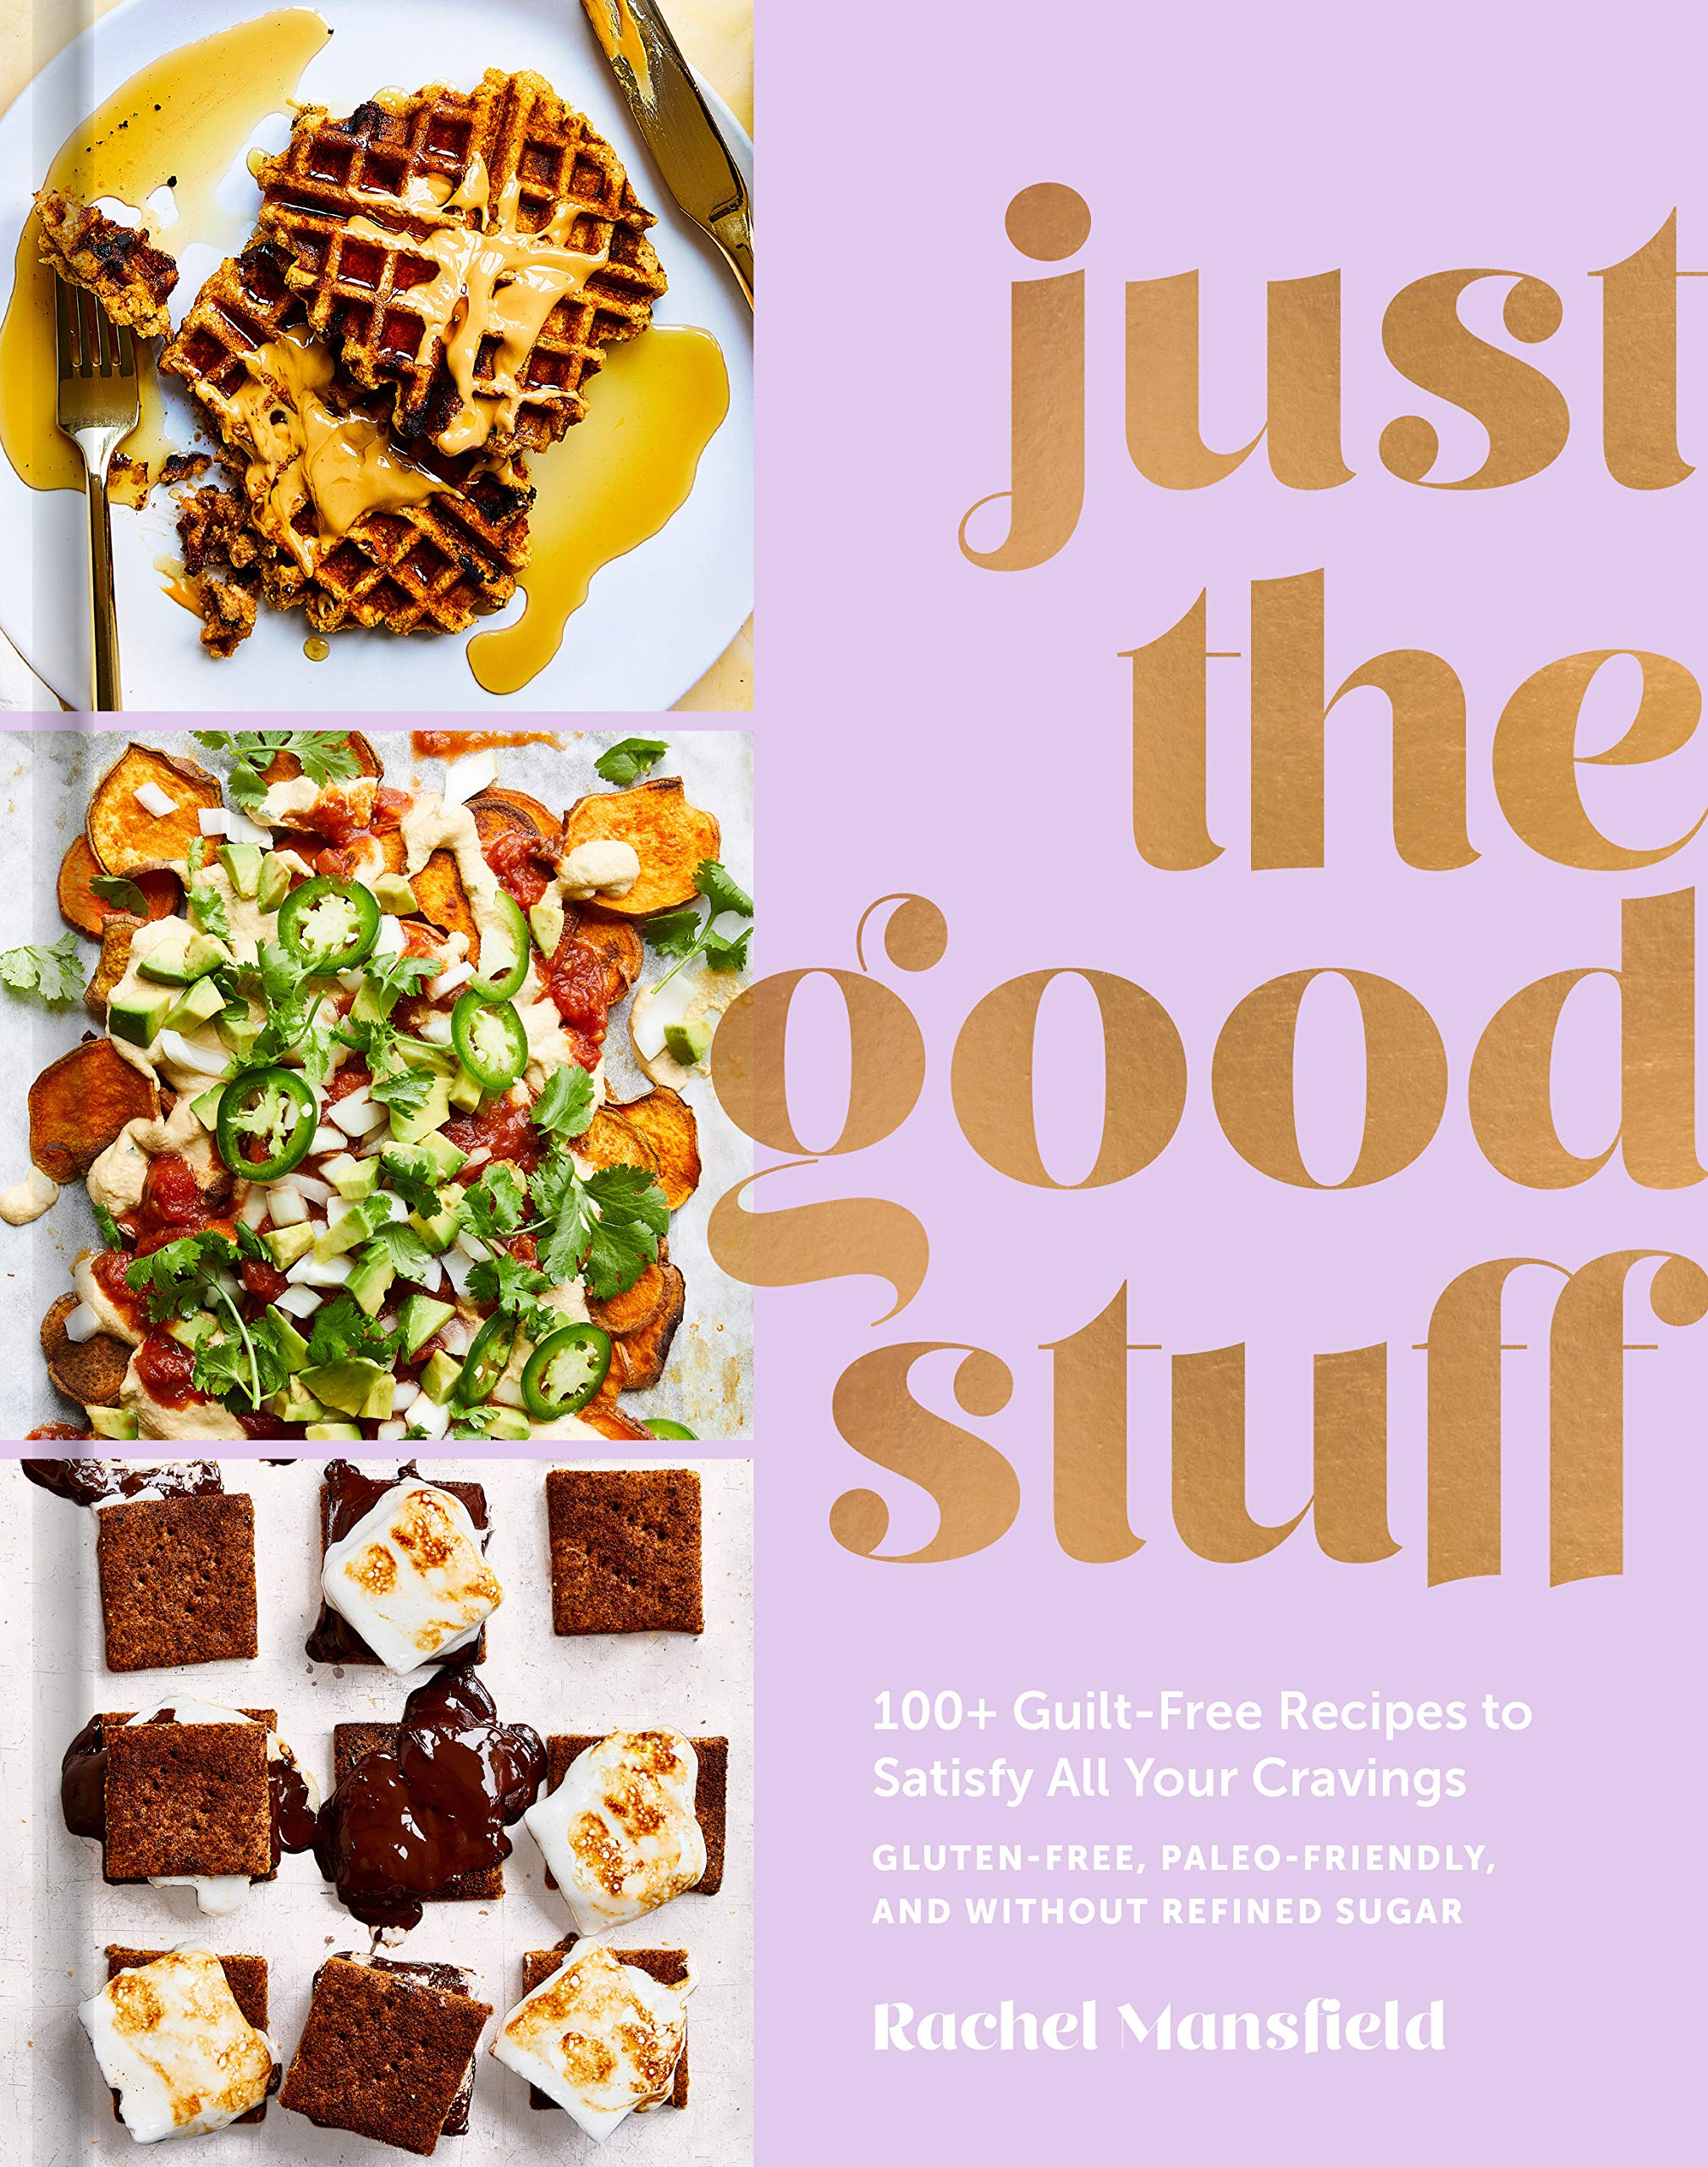 Just the Good Stuff: 100+ Guilt-Free Recipes to Satisfy All Your Cravings: A Cookbook by Clarkson Potter